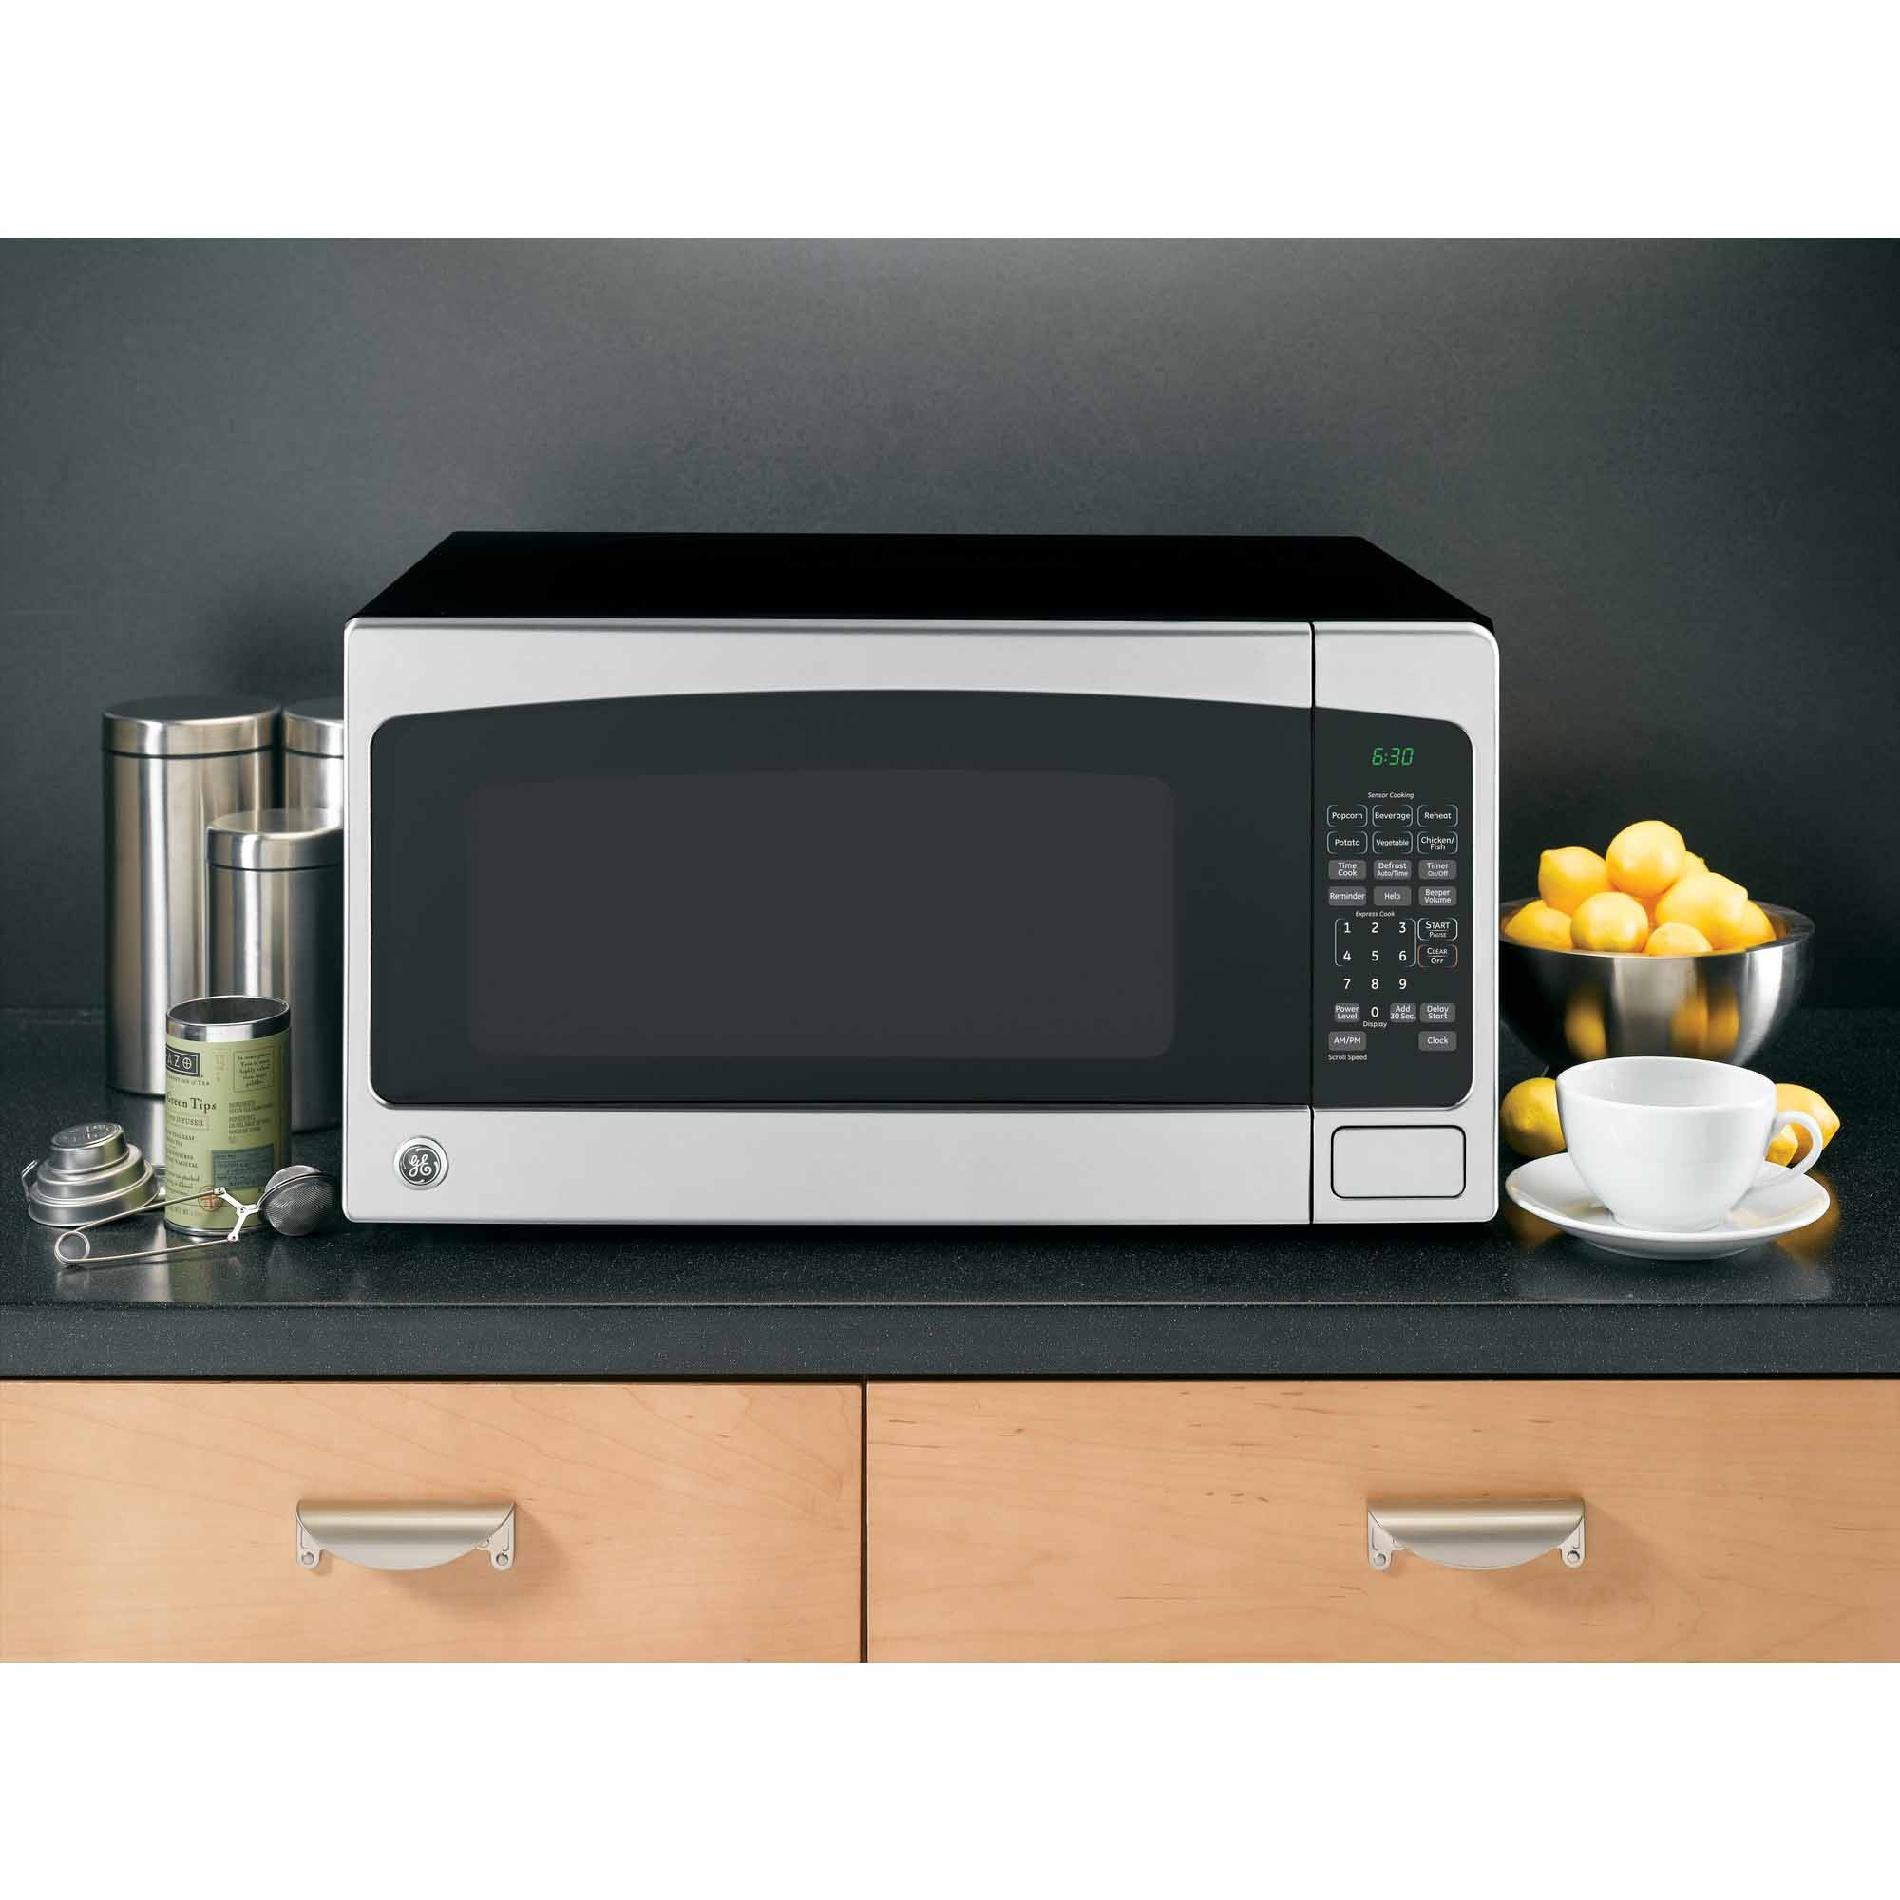 GE 2.0 cu. ft. Countertop Microwave Oven - Stainless Steel